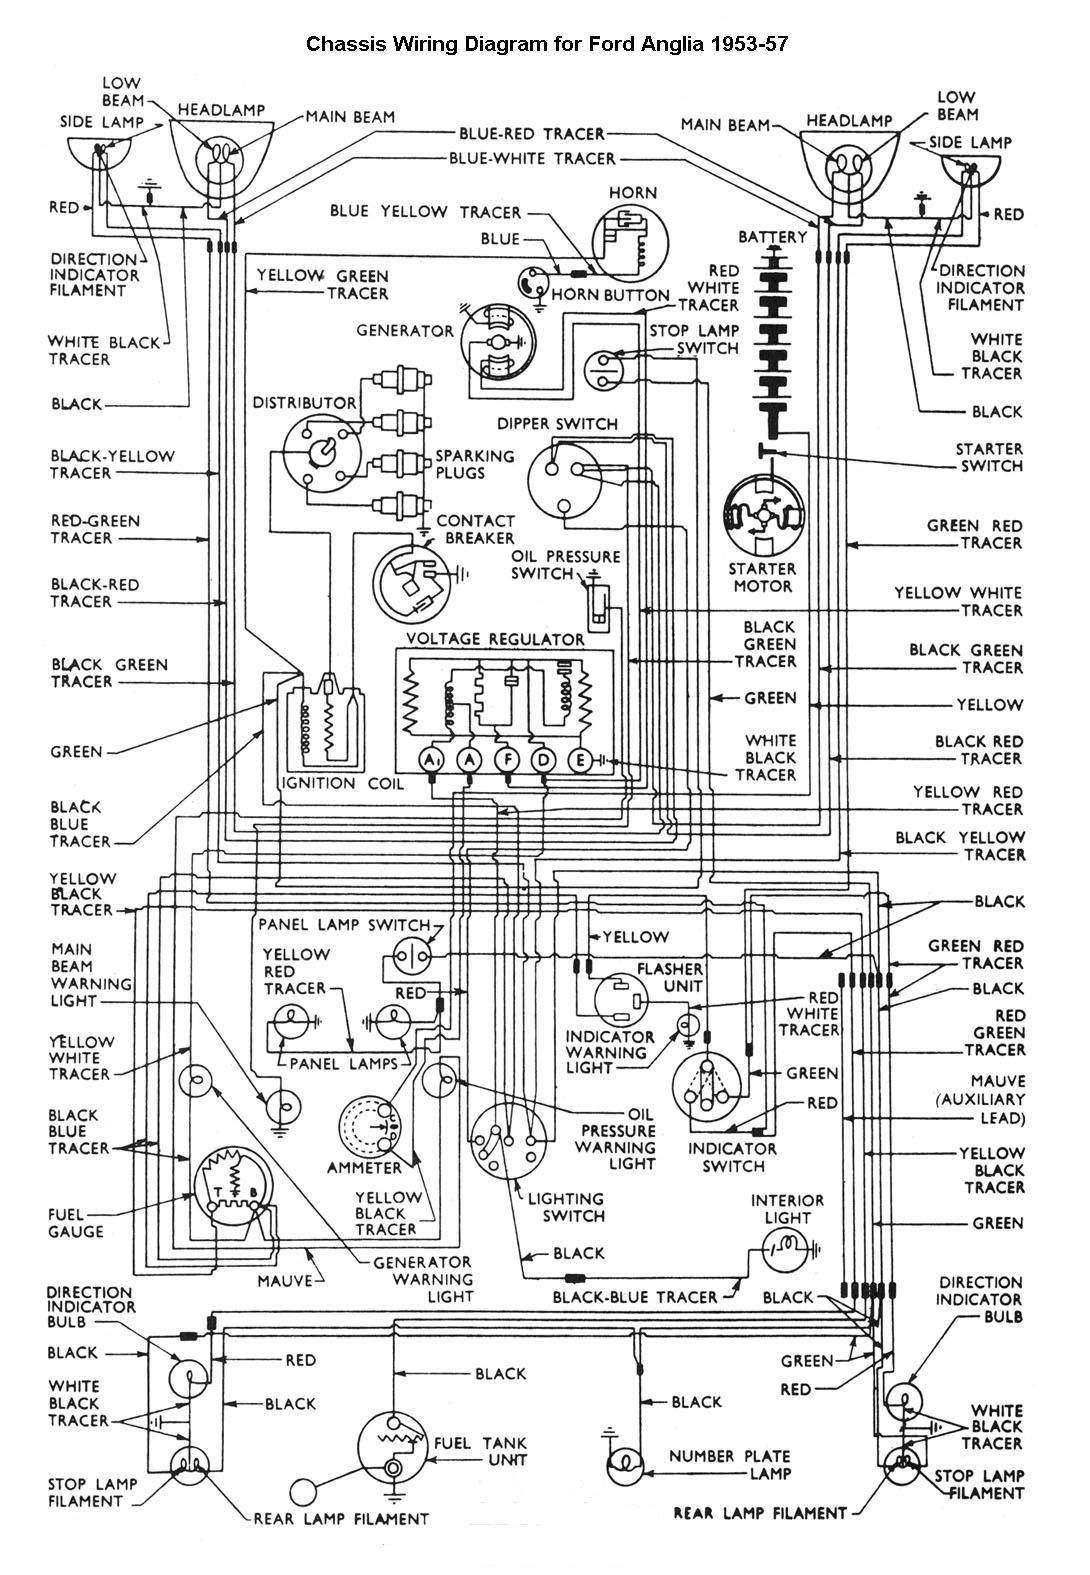 car wiring diagram | coche | Pinterest | Diagram, Cars and Car stuff